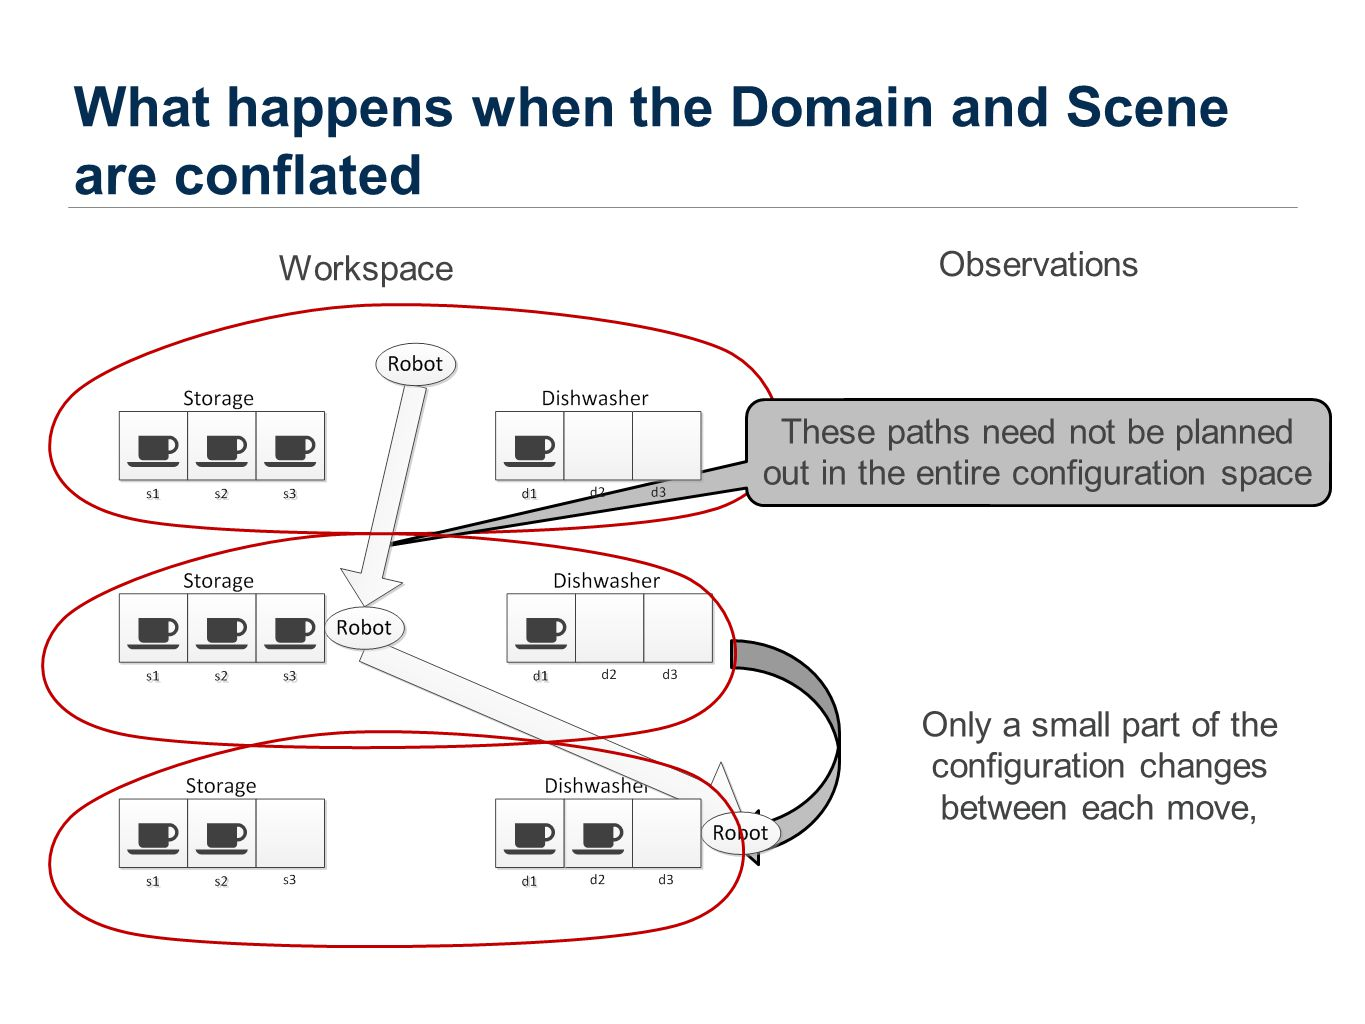 What happens when the Domain and Scene are conflated Workspace Only a small part of the configuration changes between each move, These paths need not be planned out in the entire configuration space Observations